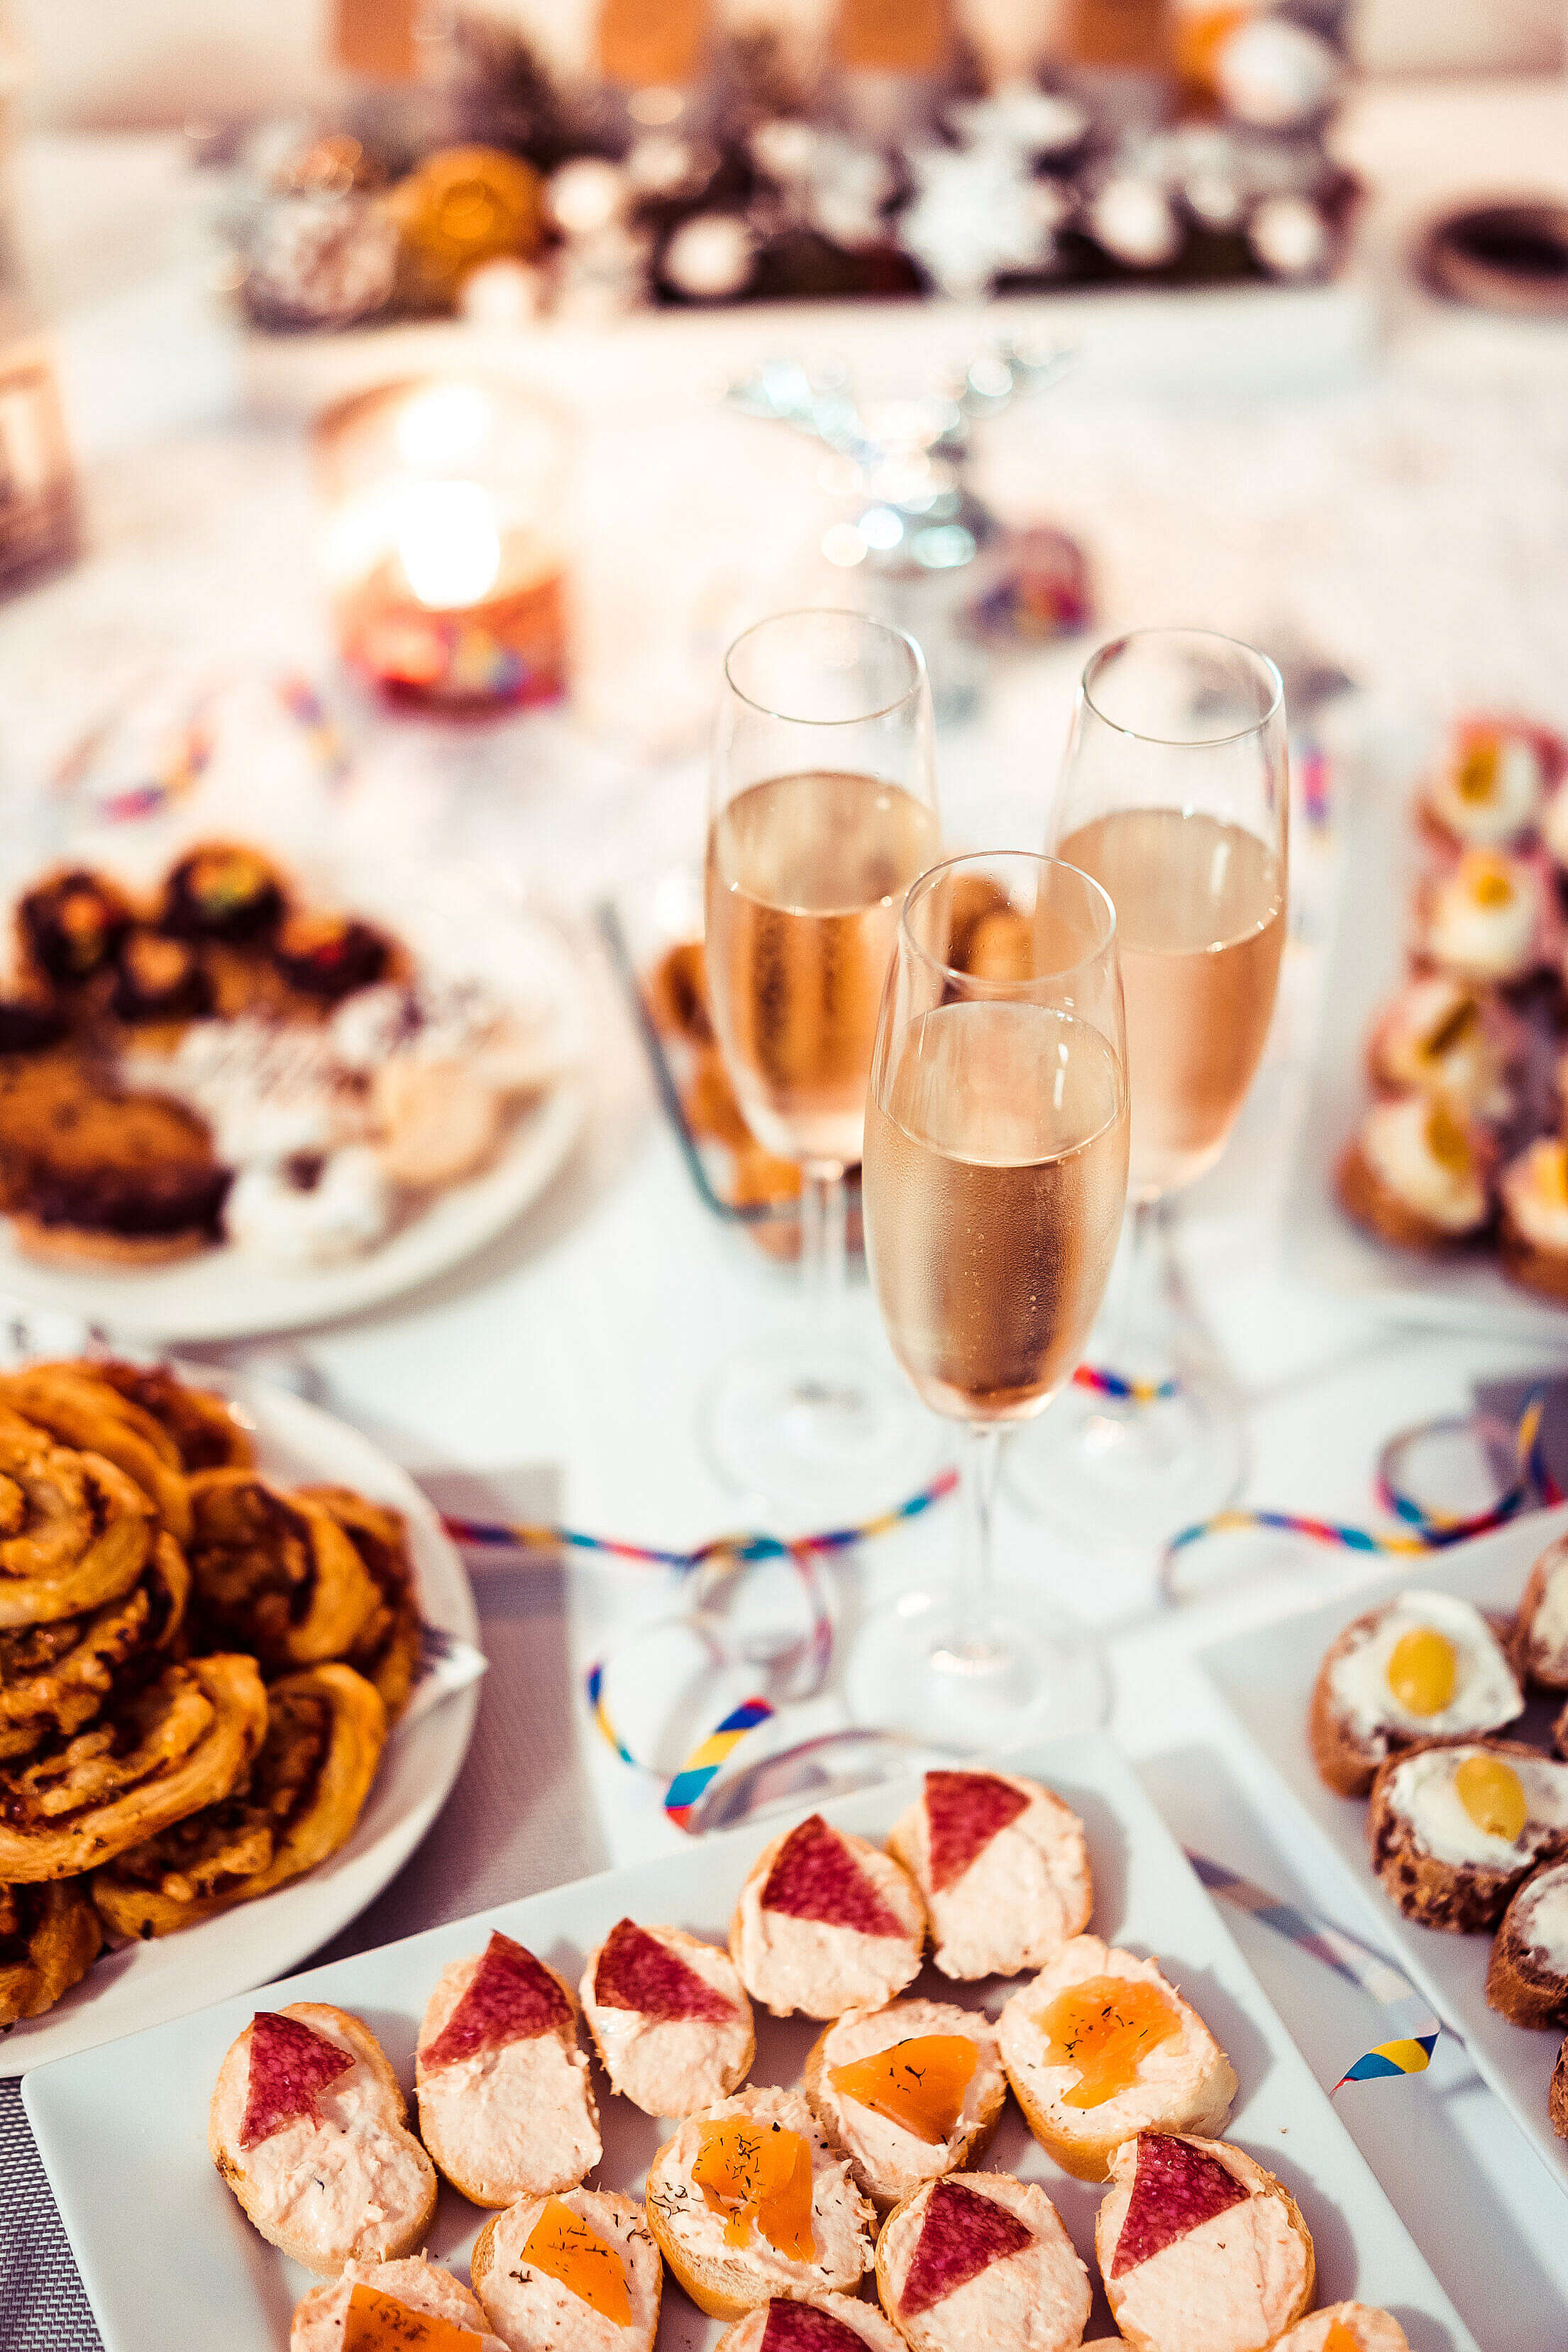 New Years Eve Vertical Free Stock Photo